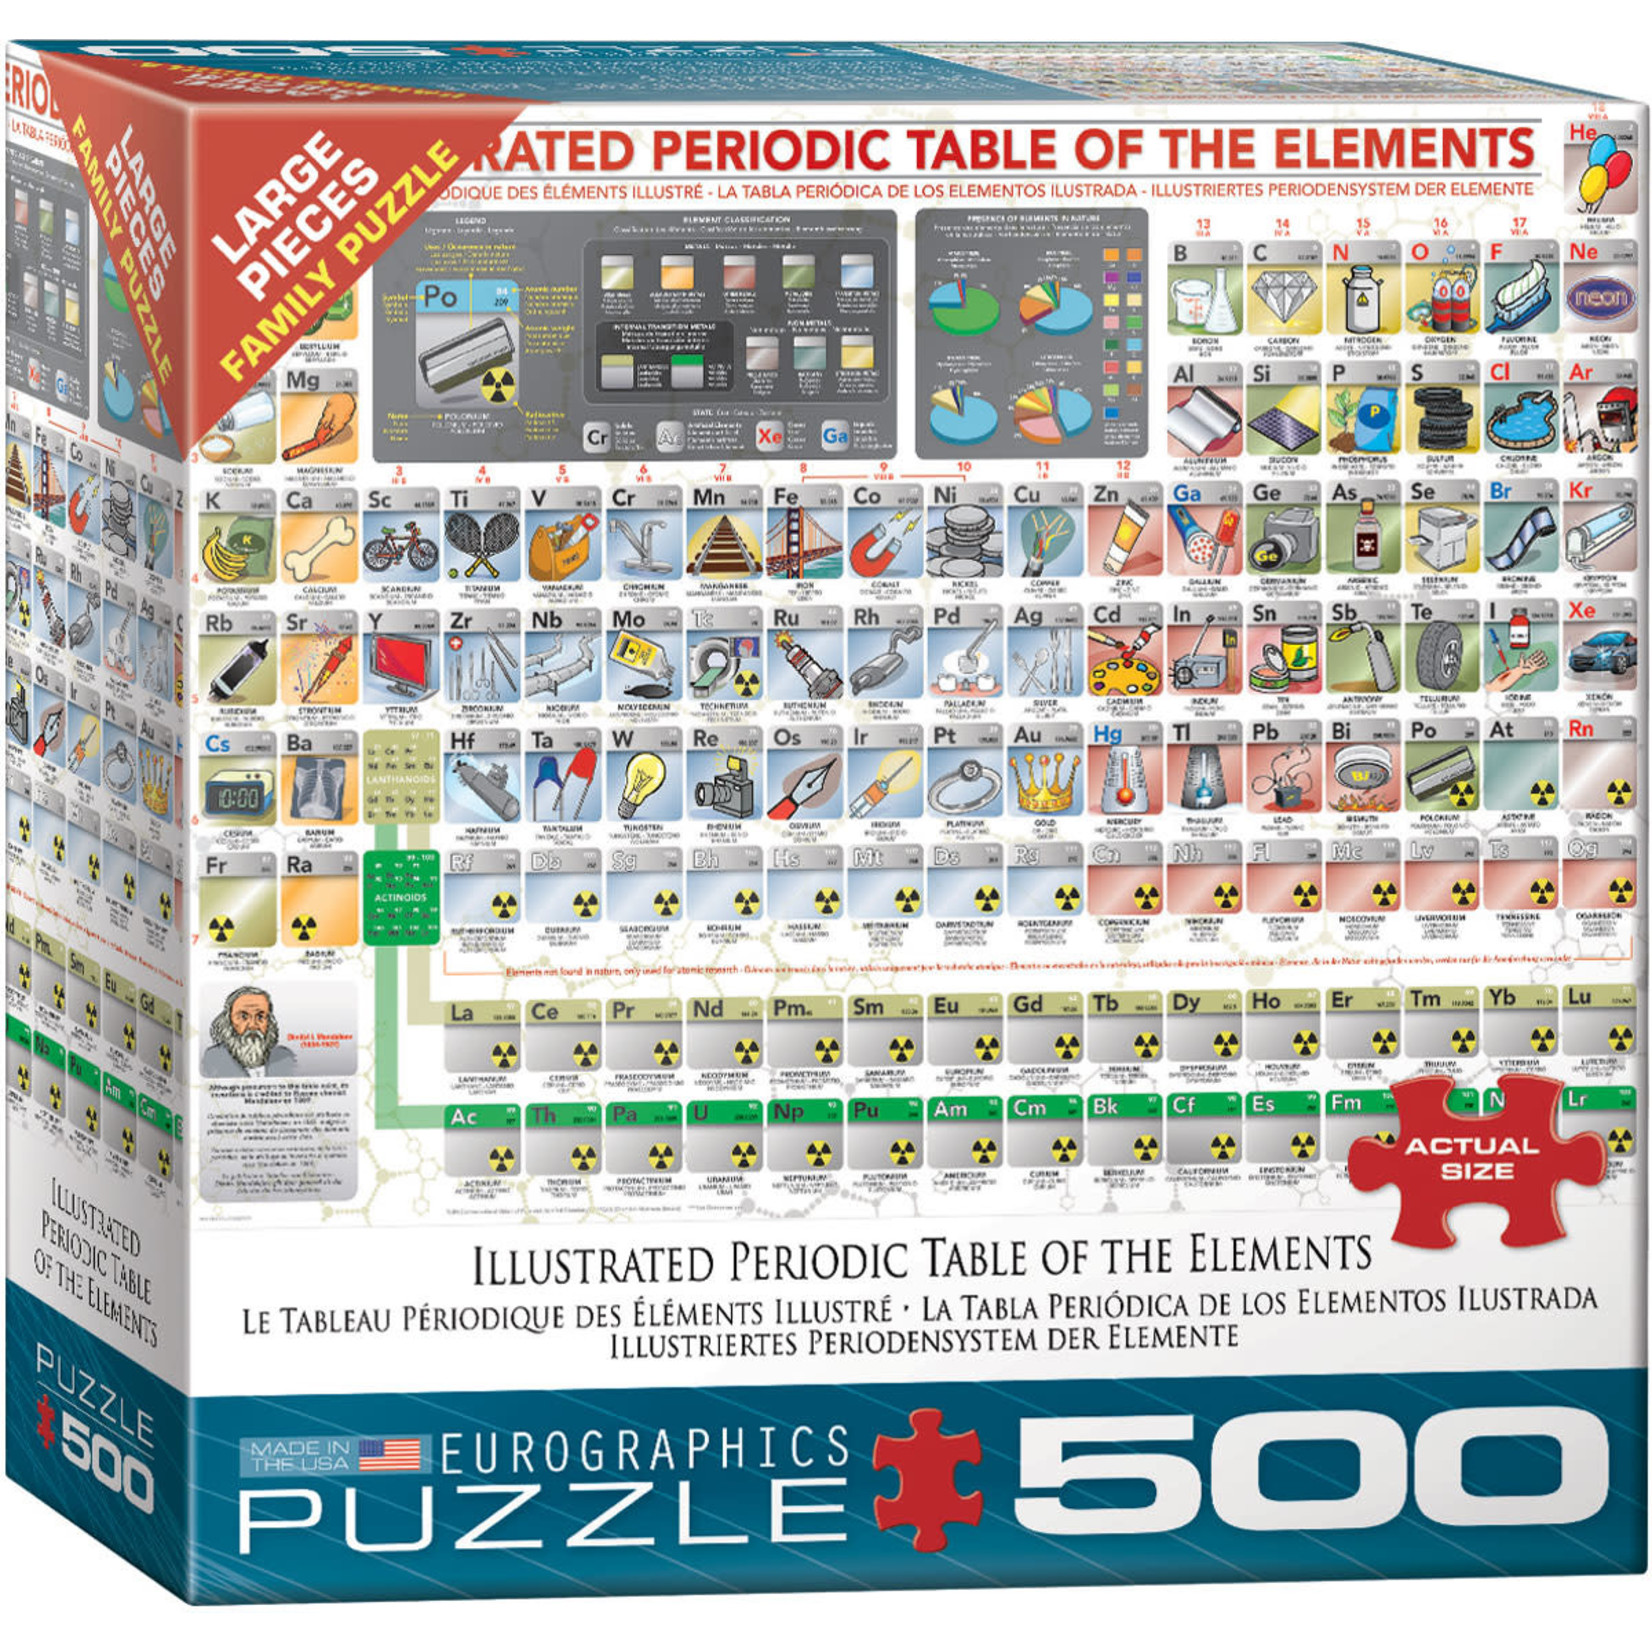 Eurographics Illustrated Periodic Table - 500 Piece Jigsaw Puzzle